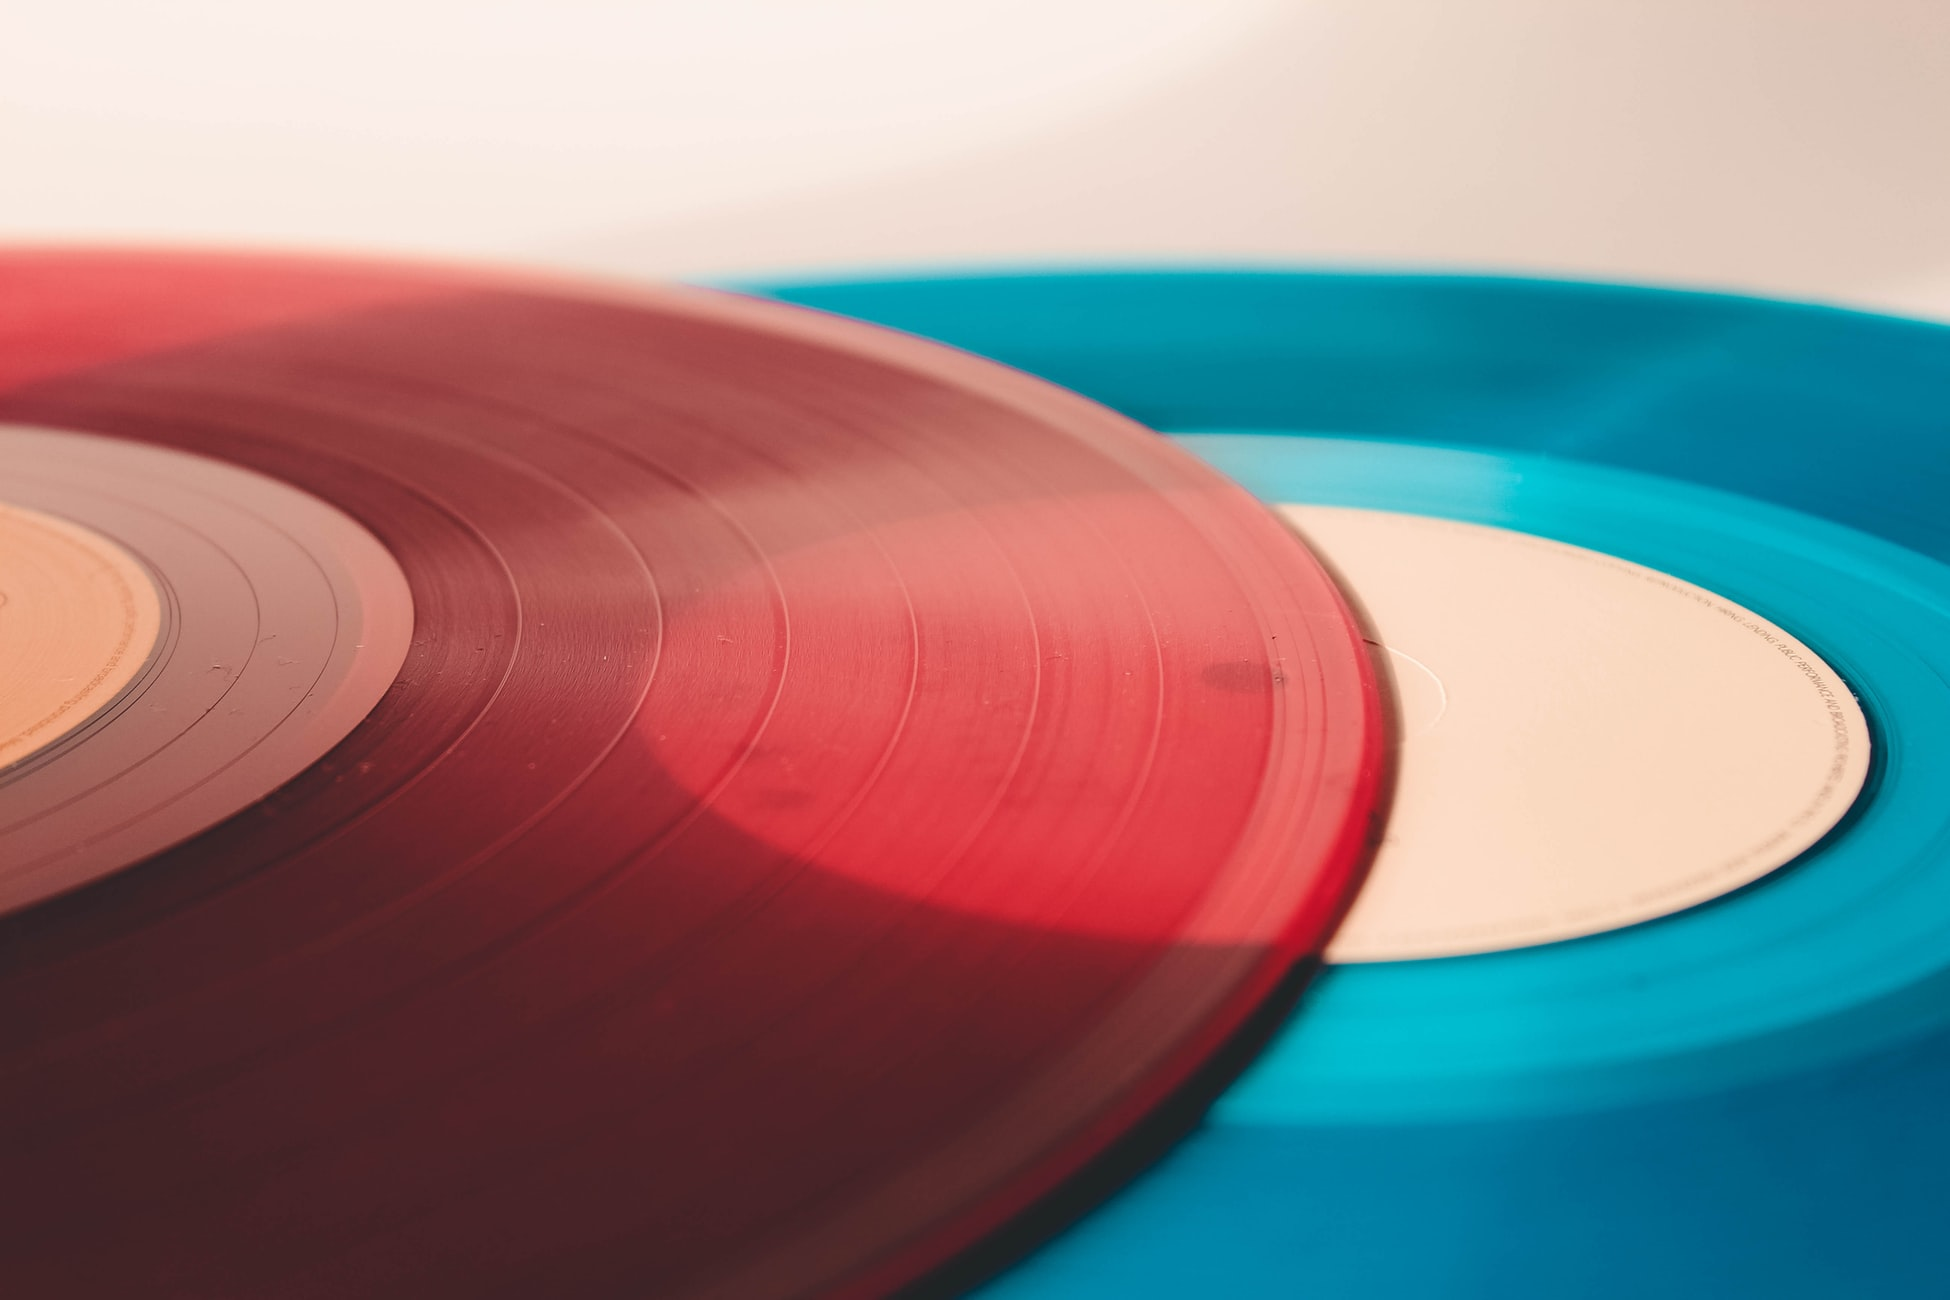 photo de vinyles rouge et bleu